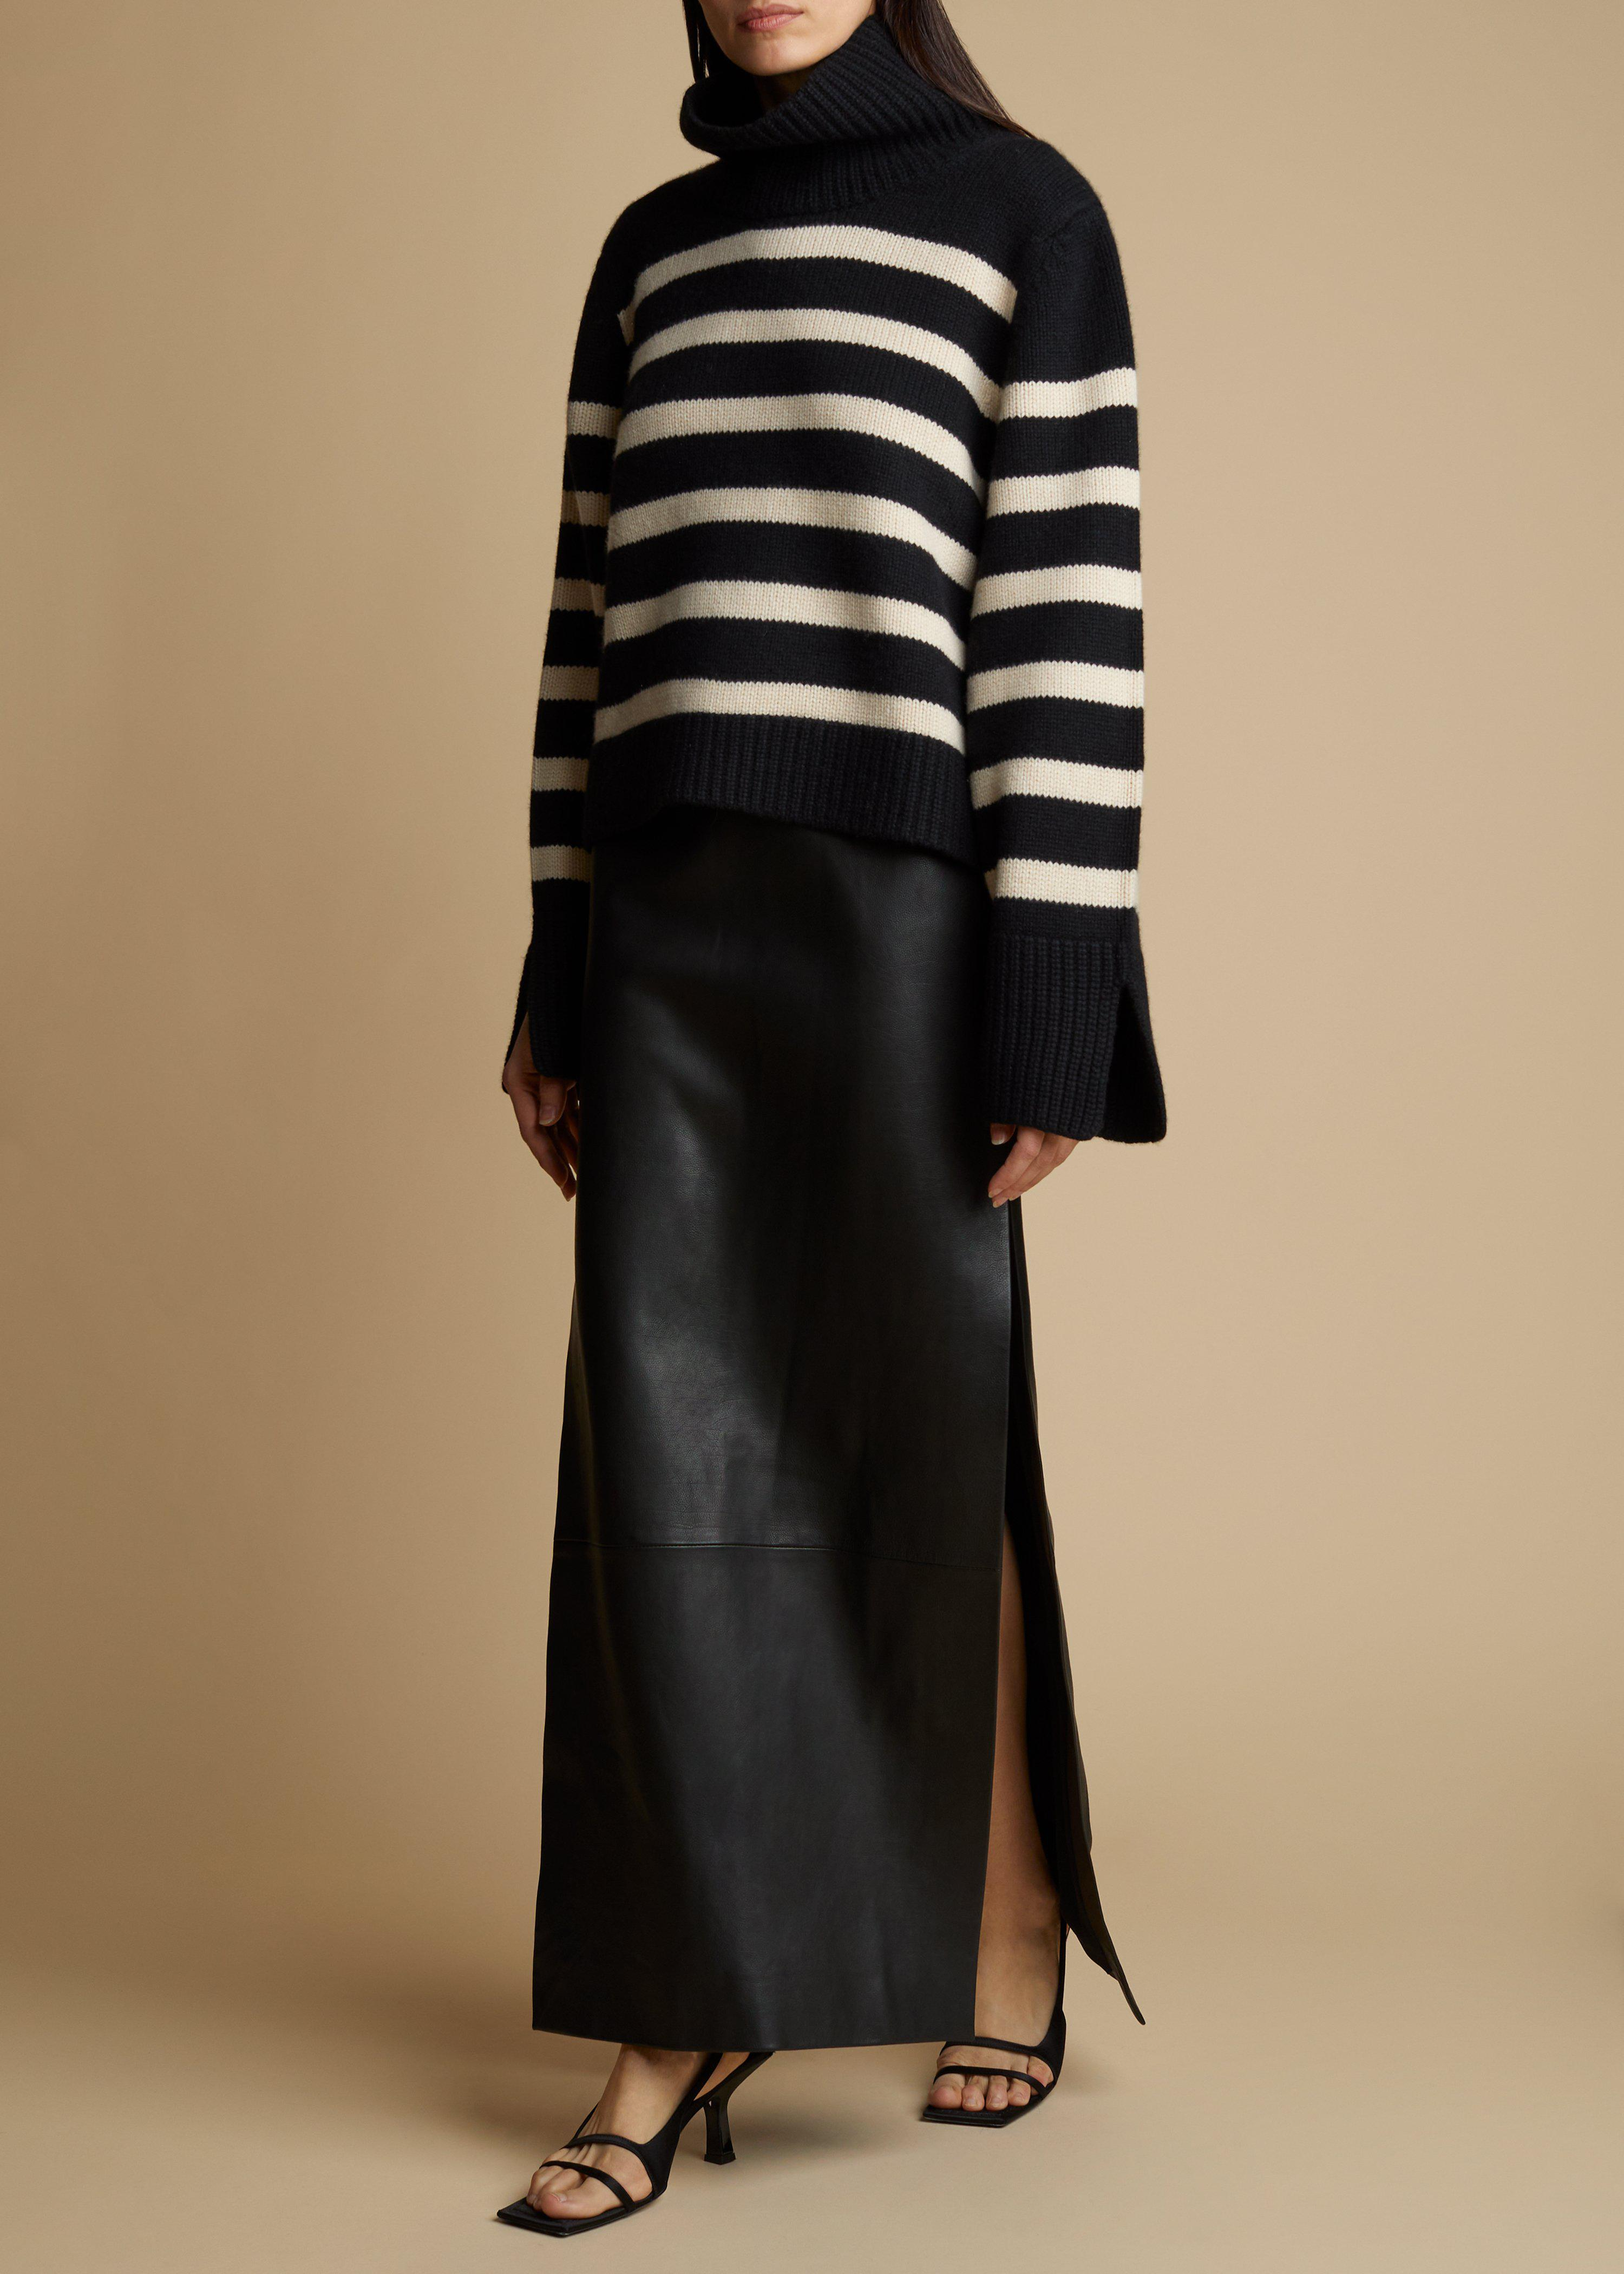 The Marion Sweater in Black and Custard Stripe